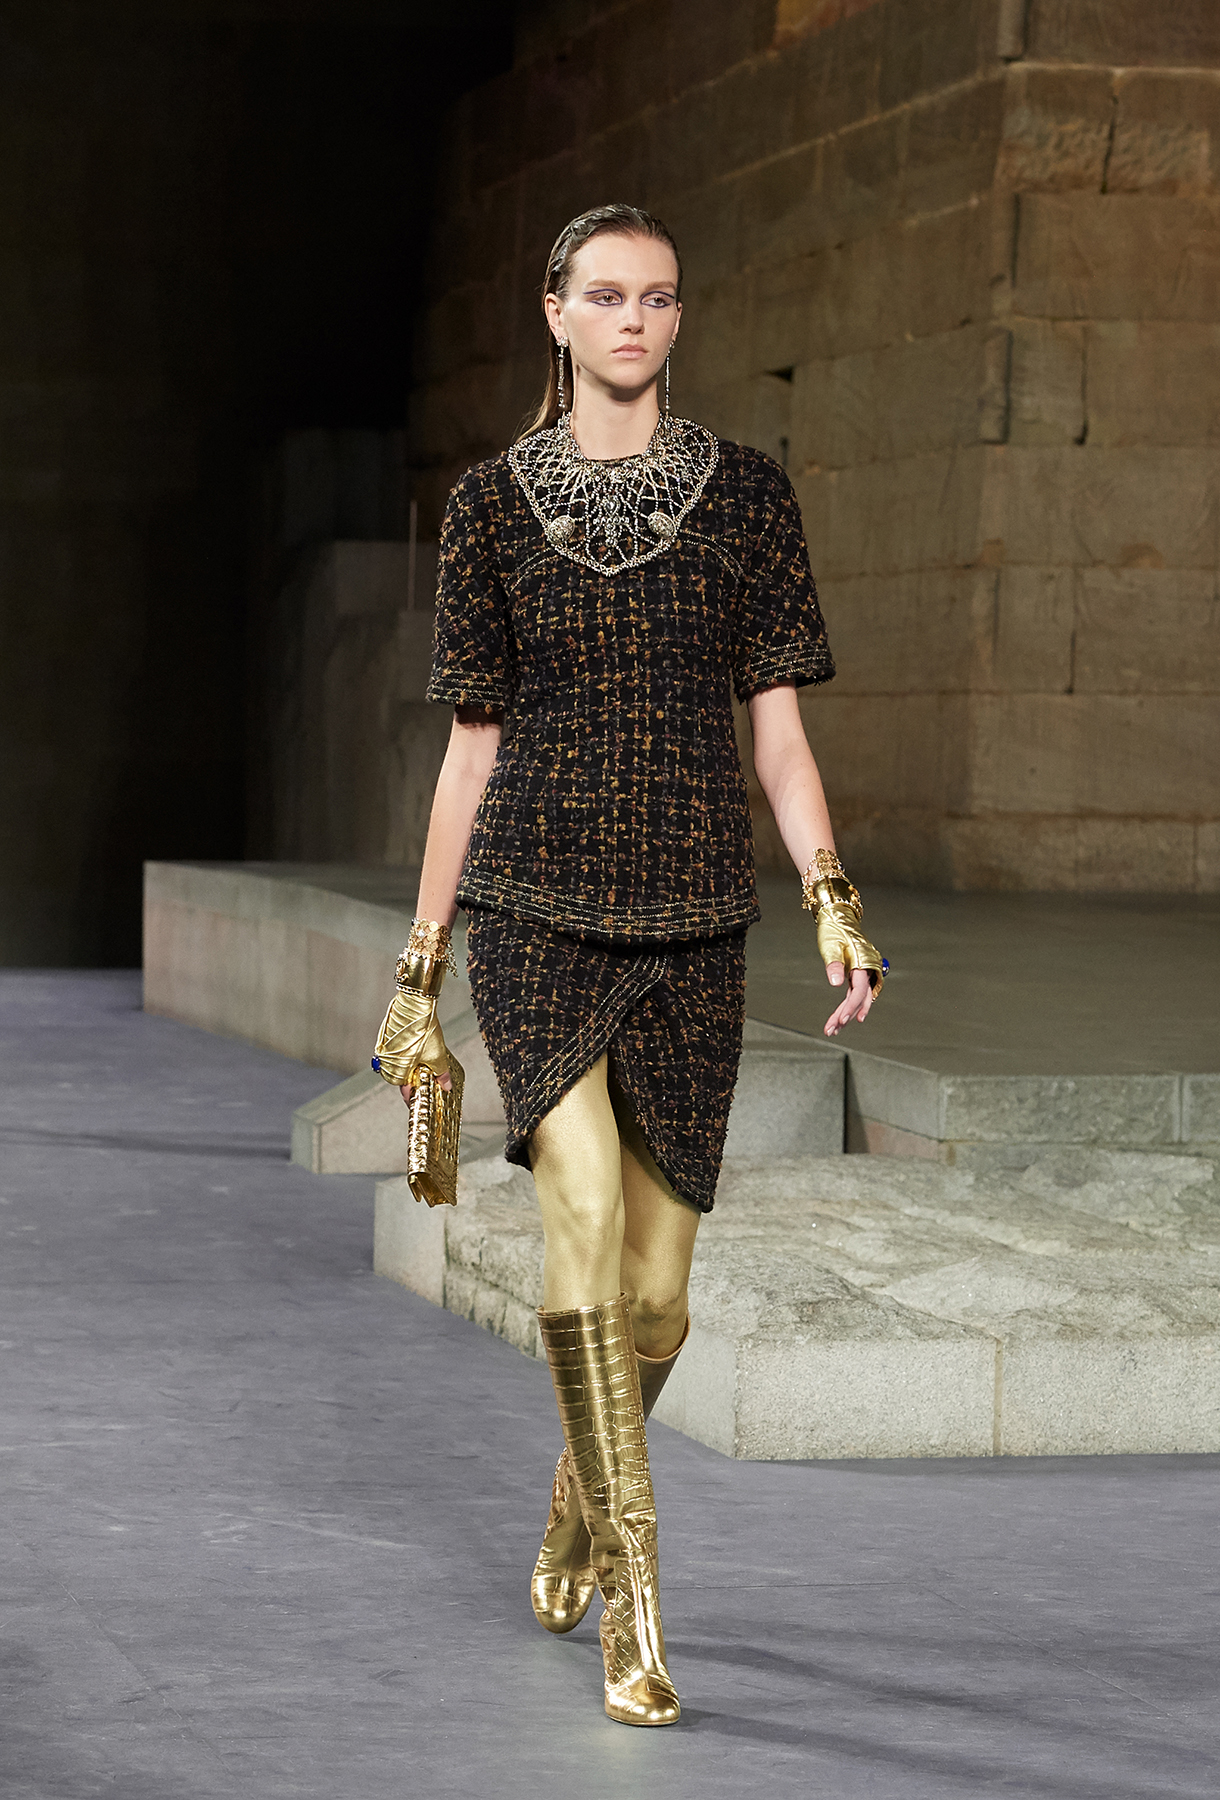 Chanel Métiers d'art Collection 2019